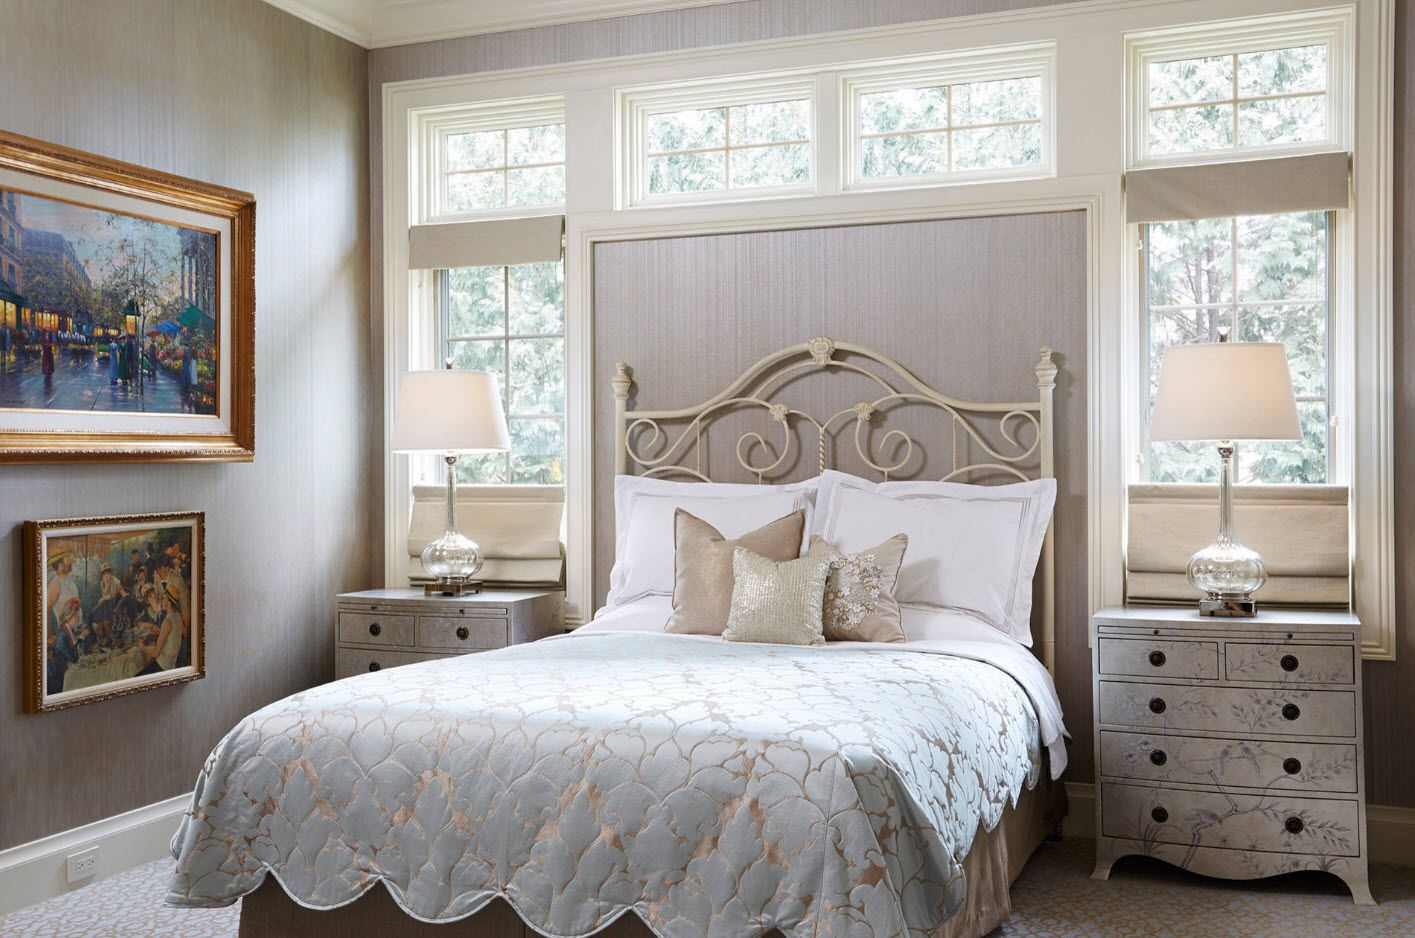 Classic gray setting of the bed